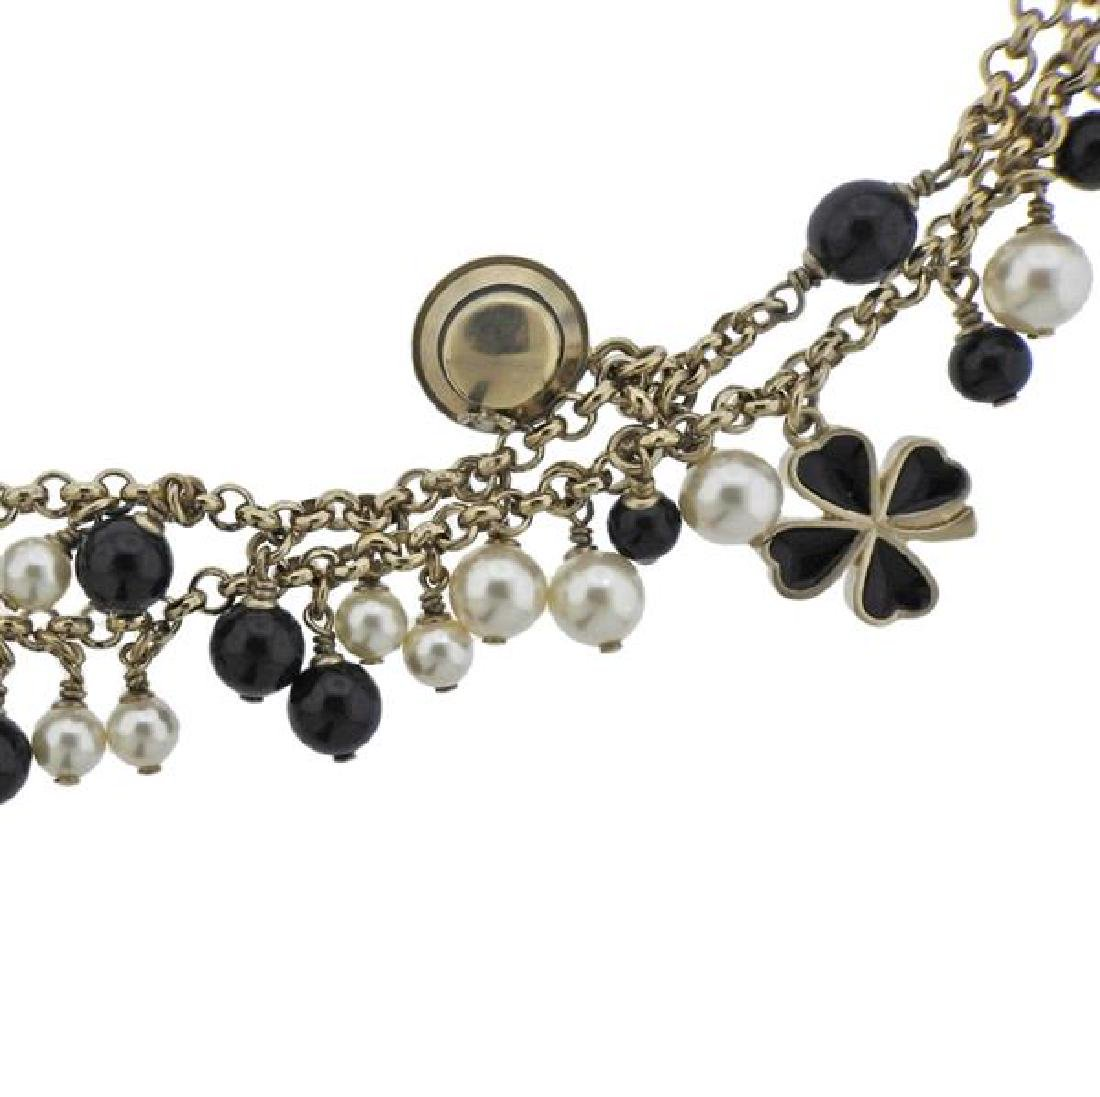 Chanel Black Stone Pearl Costume Charm Long Necklace - 2